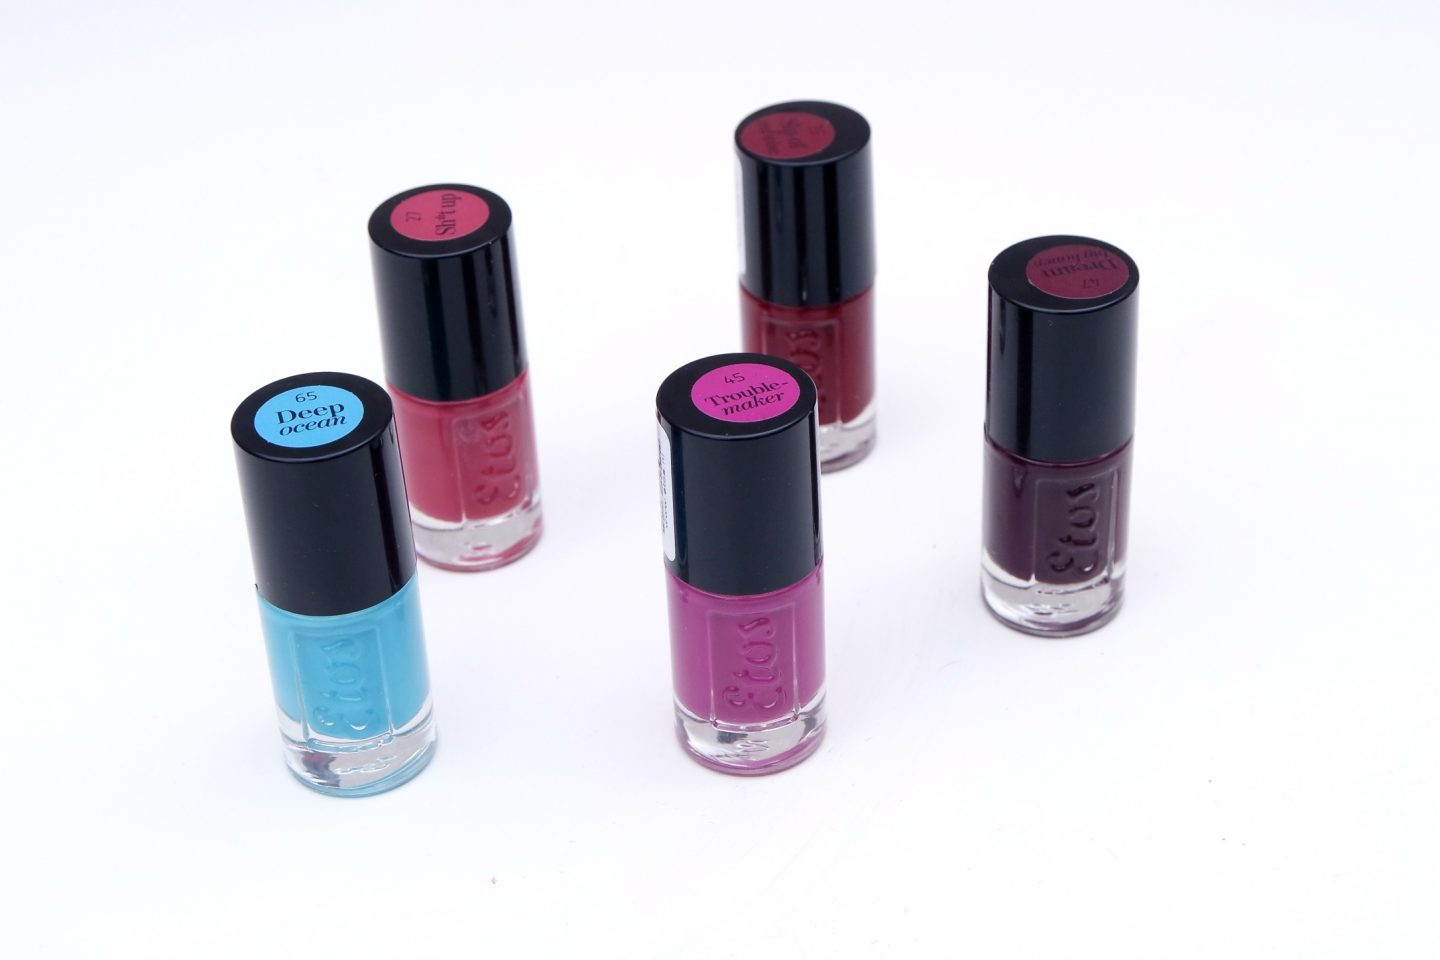 Etos Nail Polishes + Giveaway!